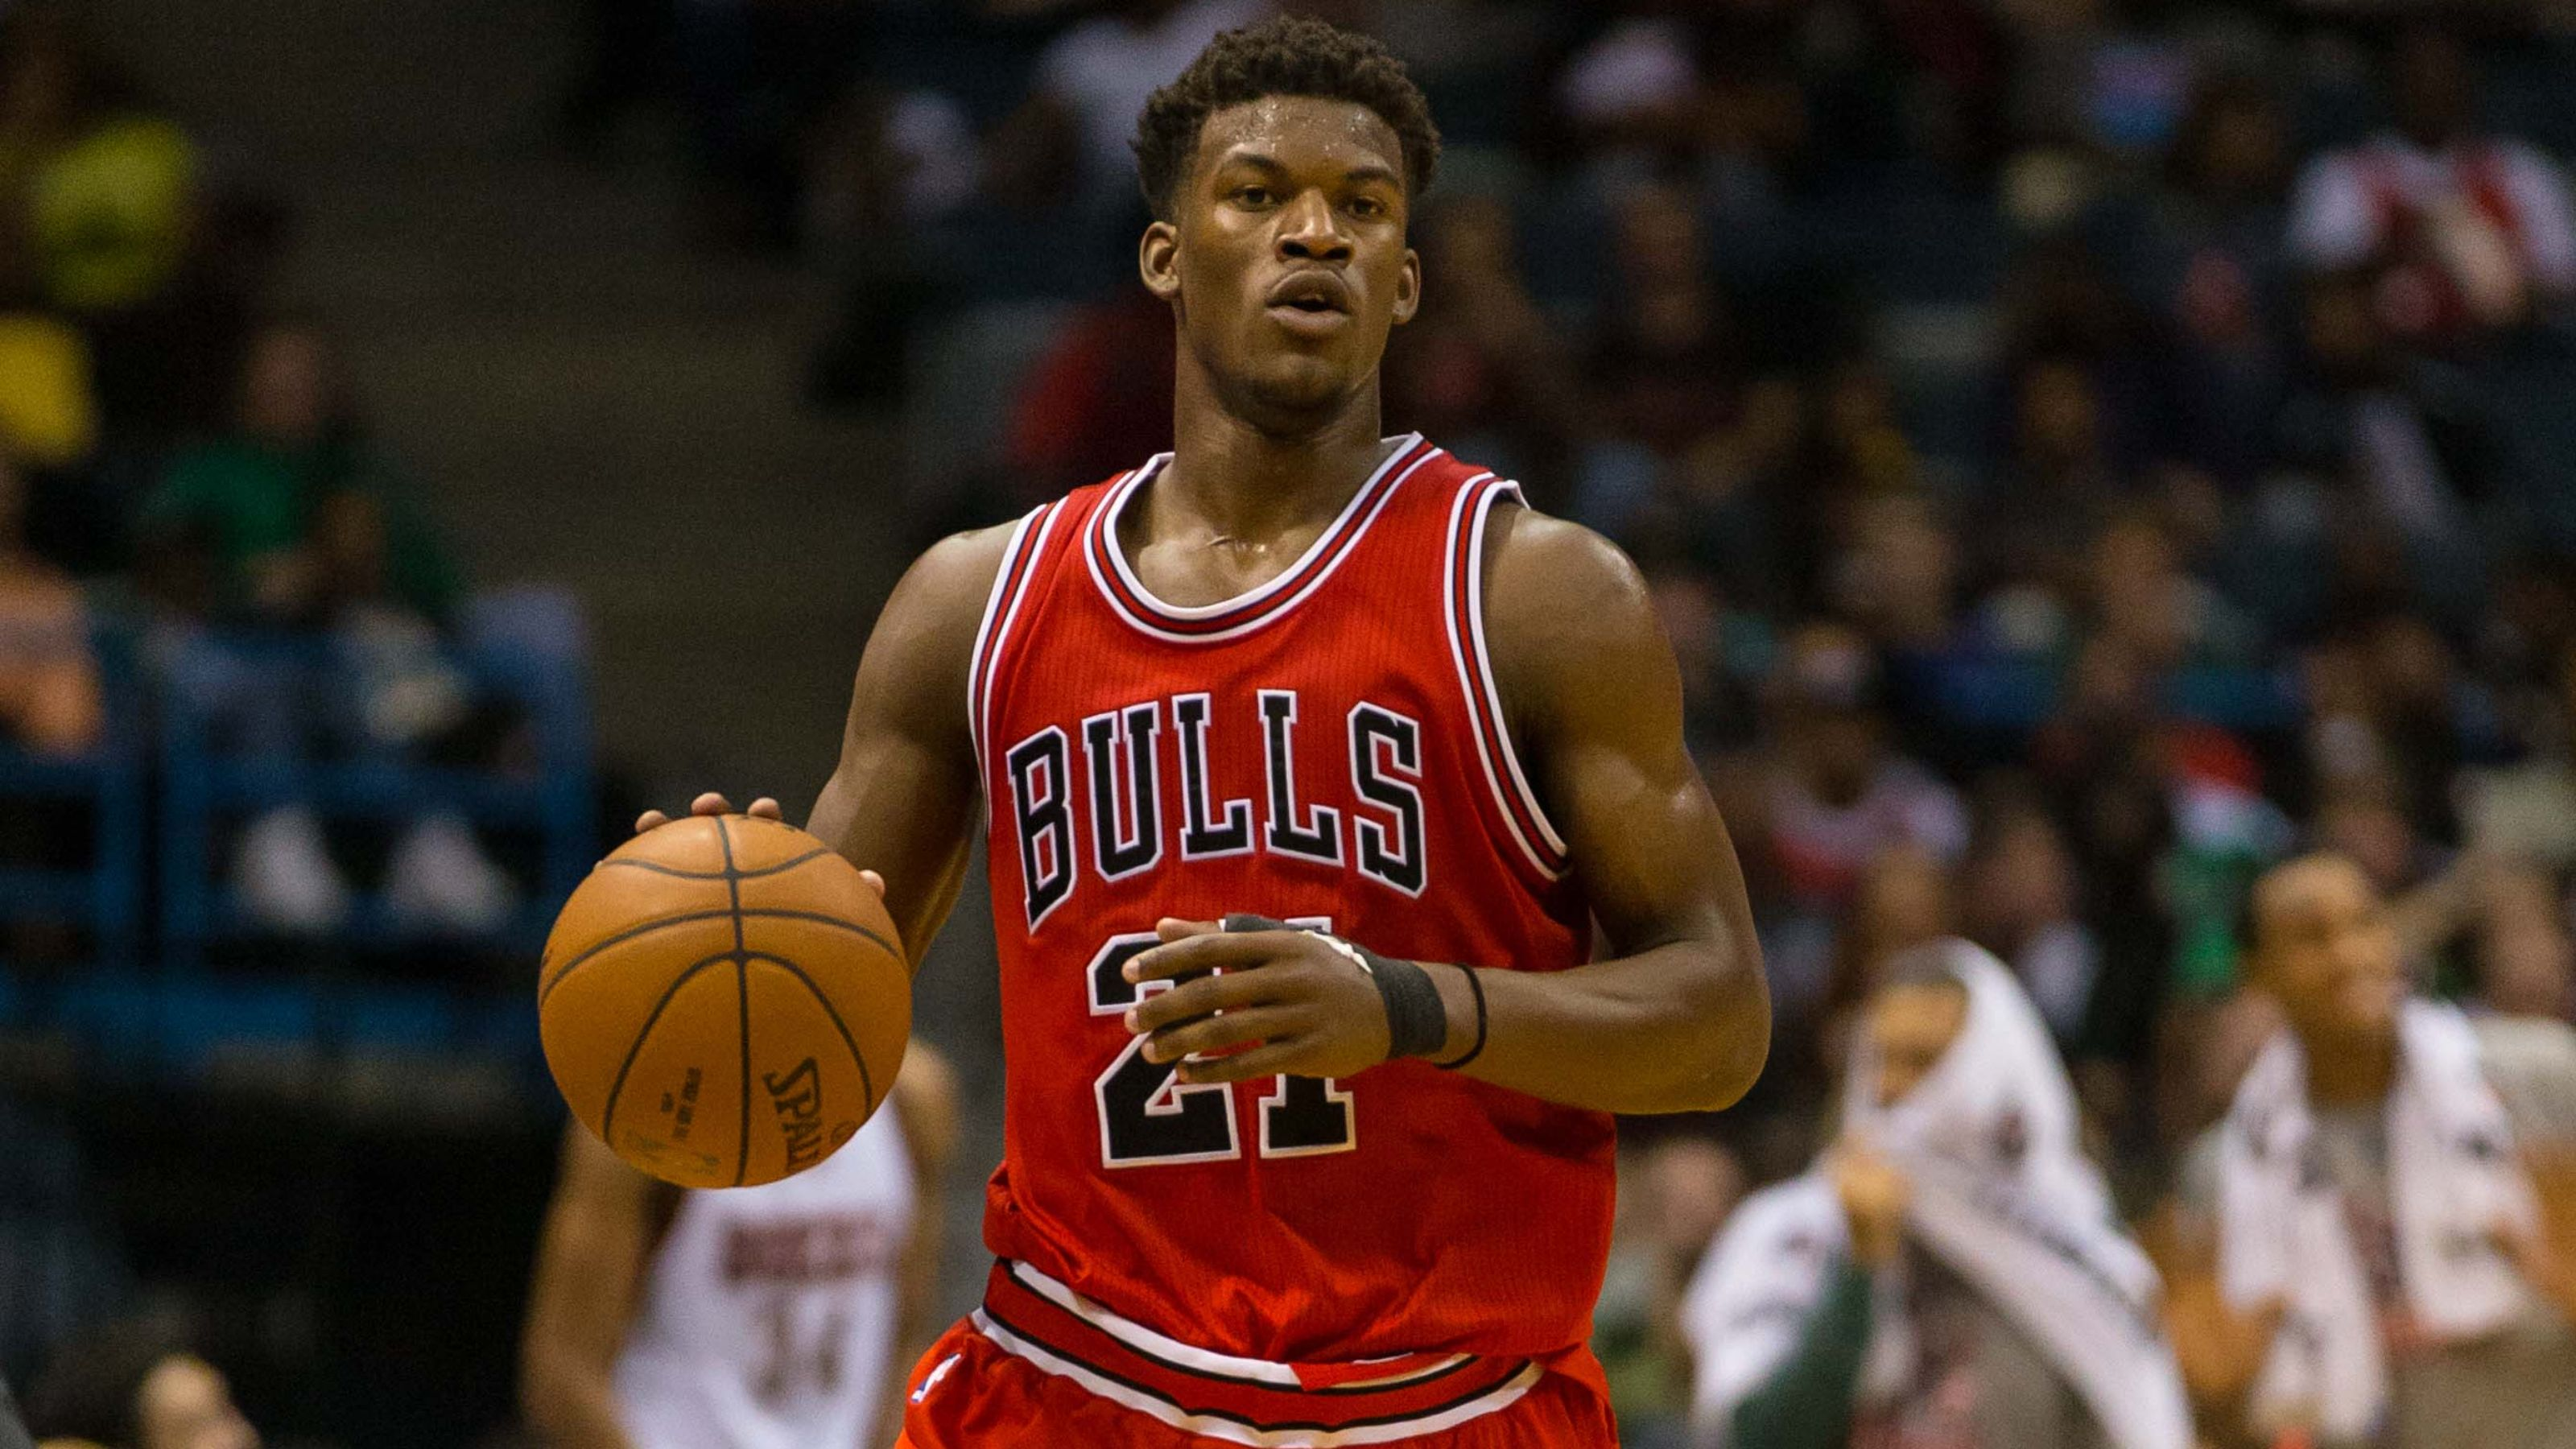 Jimmy Butler Wallpapers High Resolution and Quality Download 3200x1800